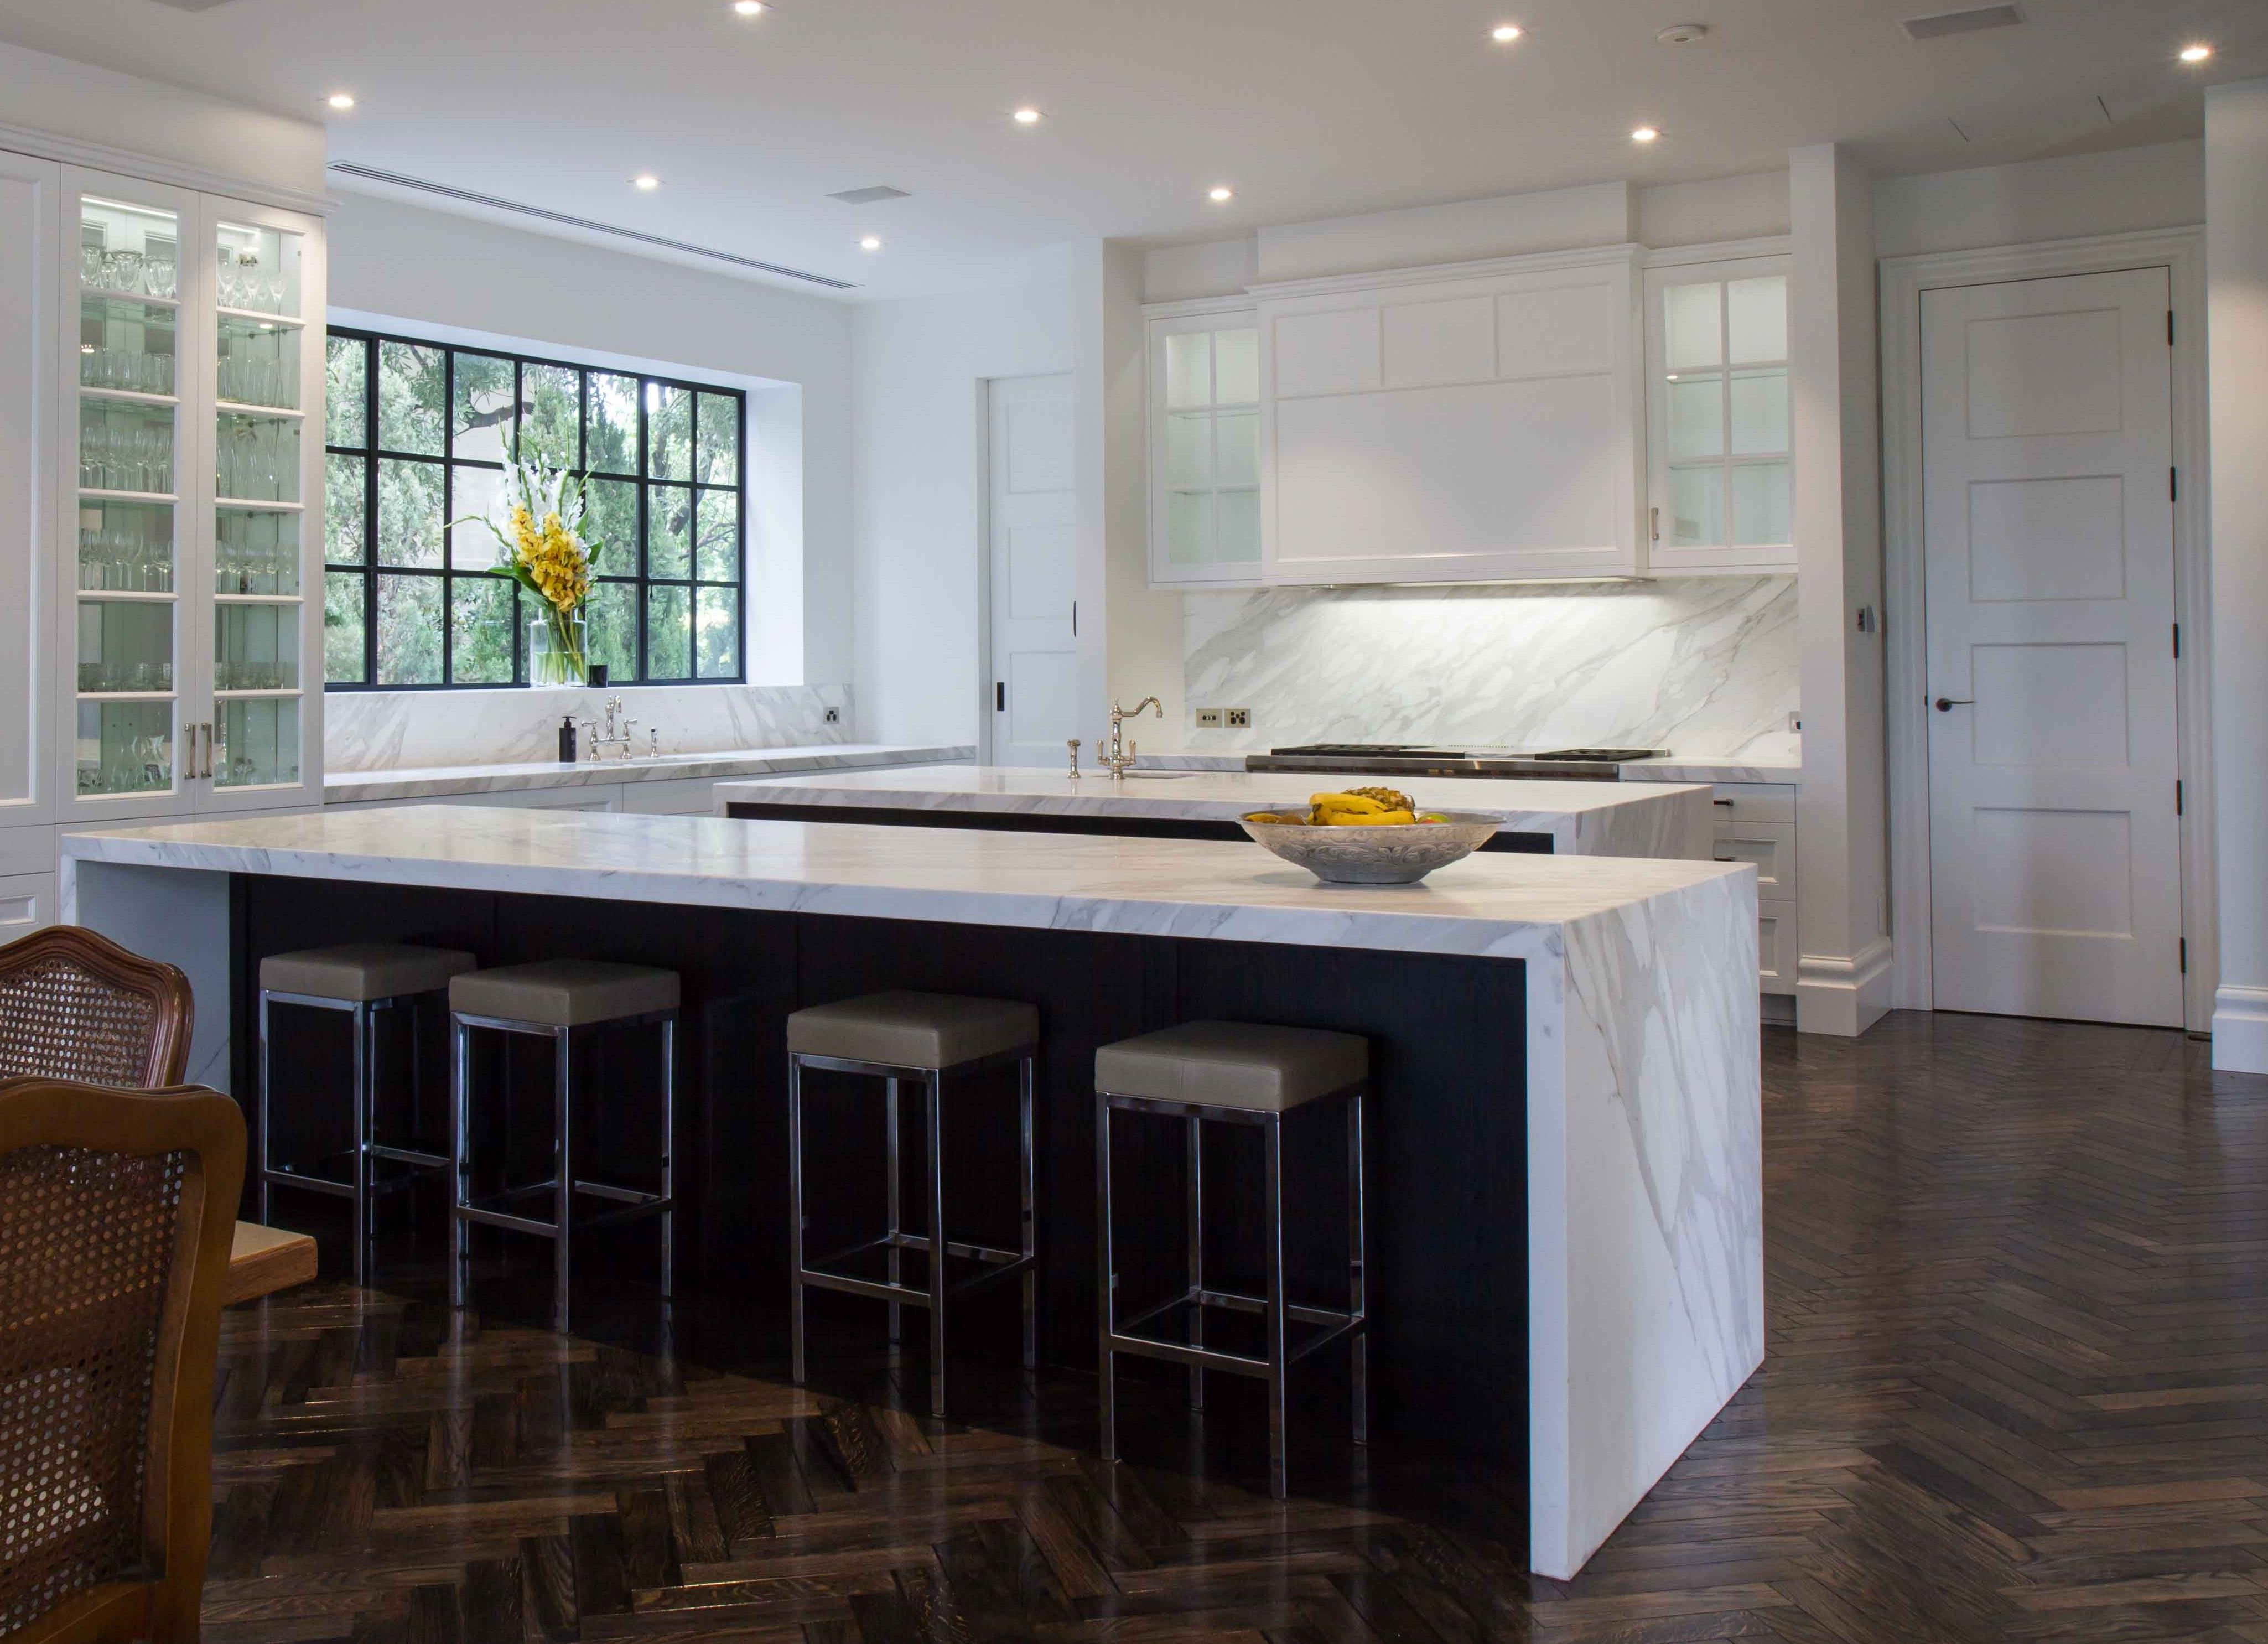 Gallery Modern Kitchen Design Trends Kitchens Ign Ideas New Tips For The  Latest Homehub